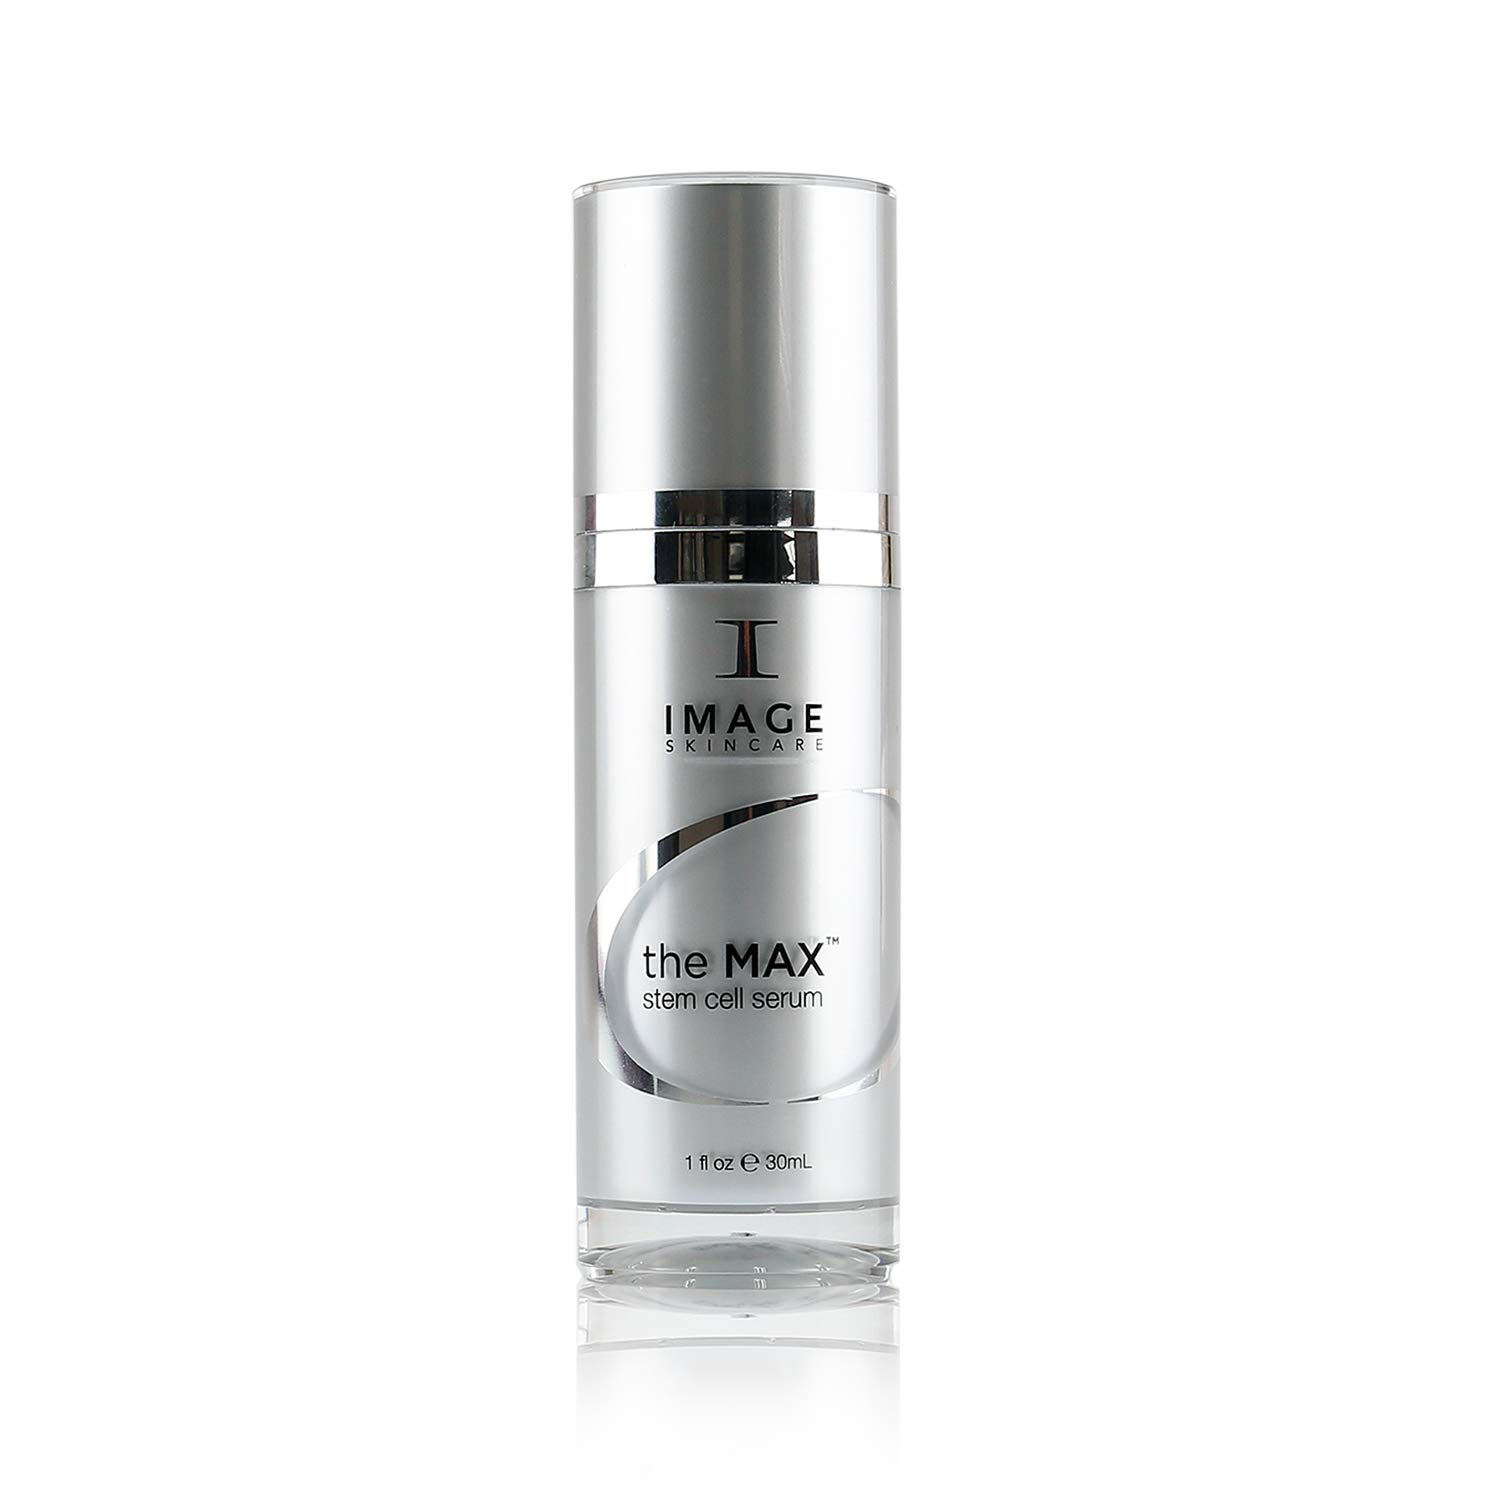 IMAGE Skincare The Max Stem Cell Serum with VT, 1 oz